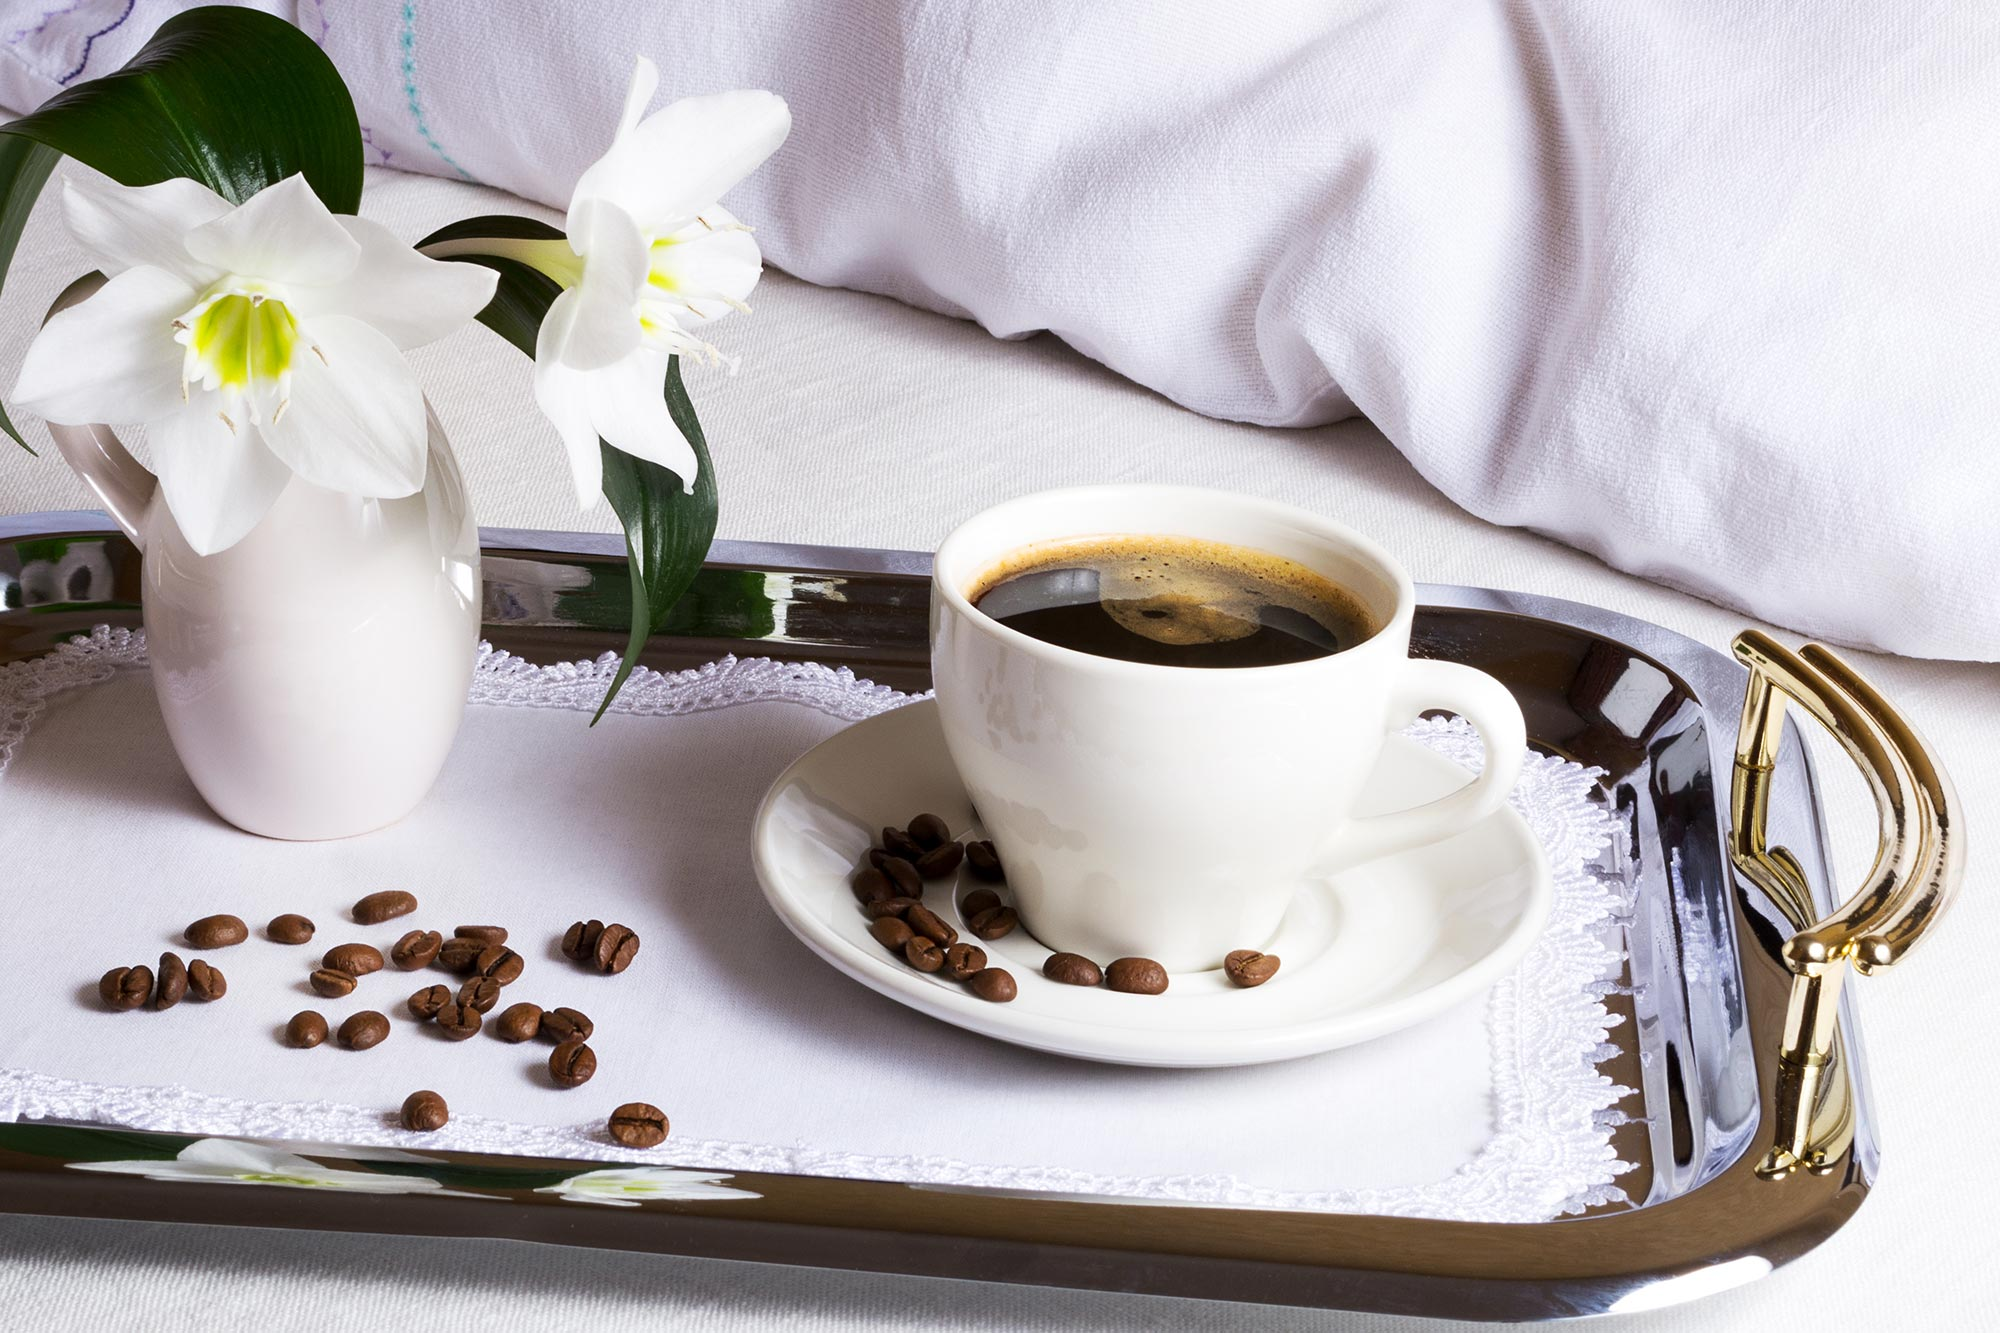 Filtered brew may be the healthiest coffee